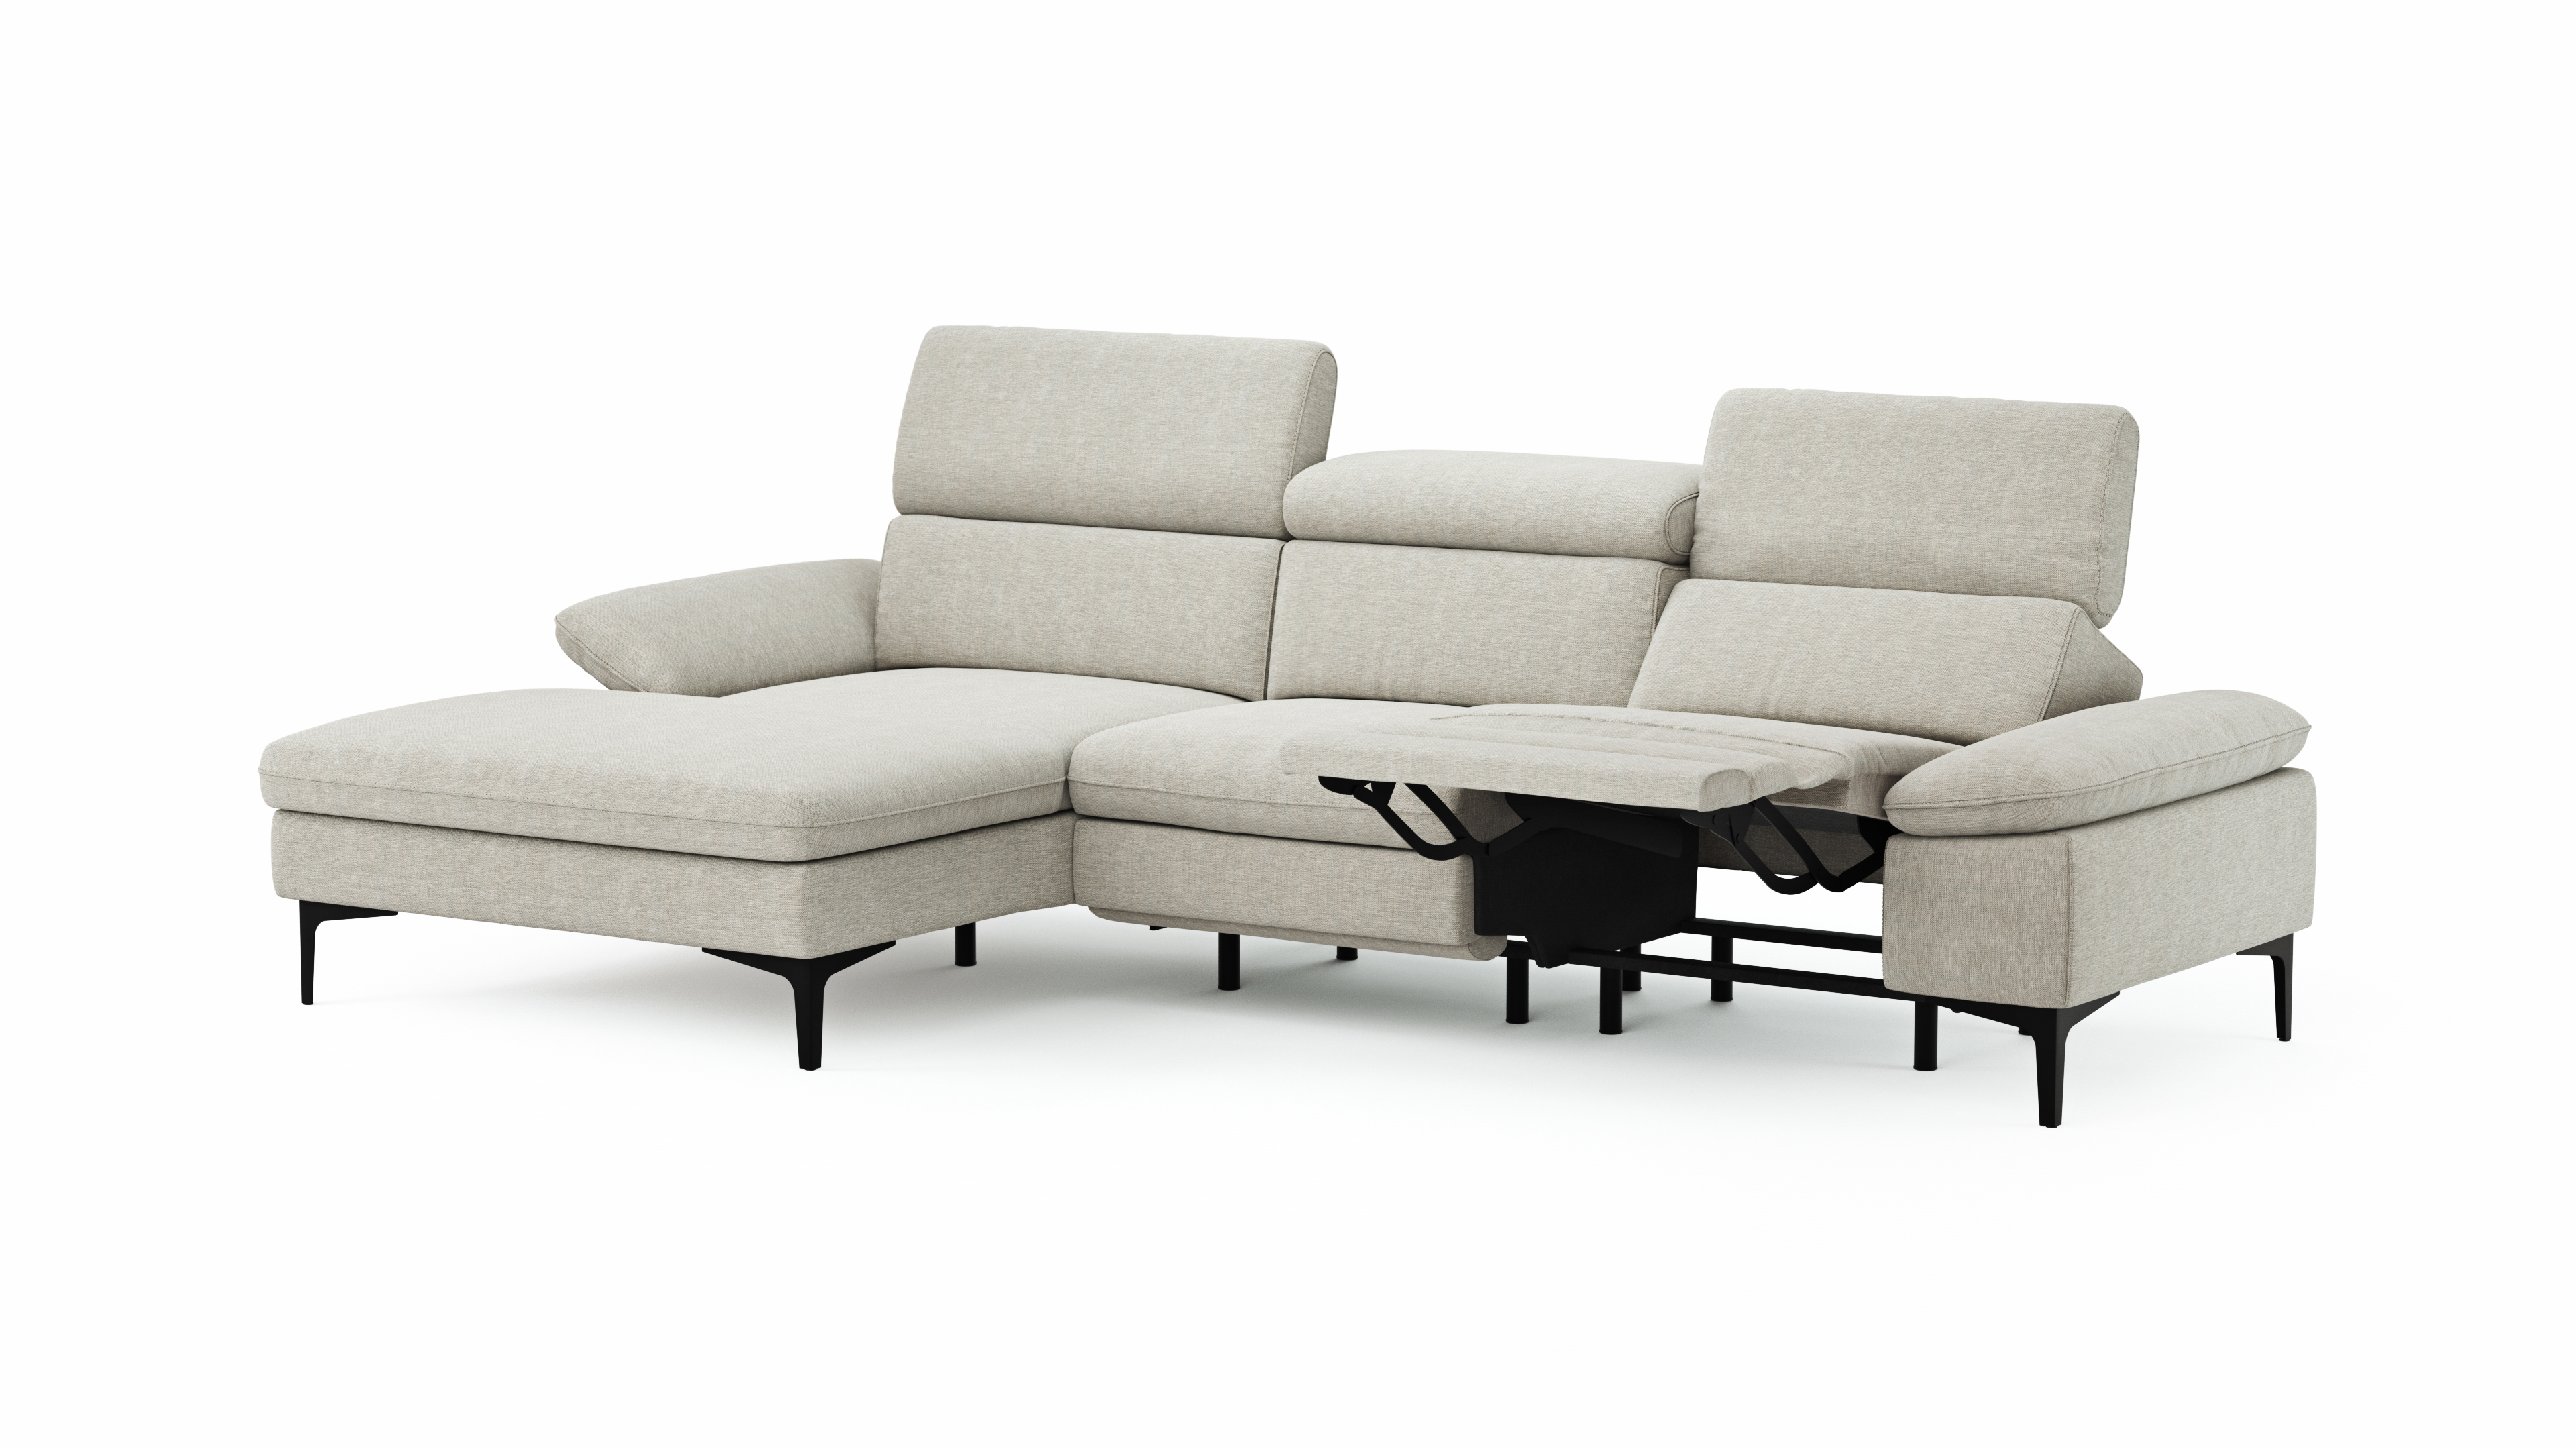 Global Family Ecksofa Felipa freisteller 4 105099 | Homepoet